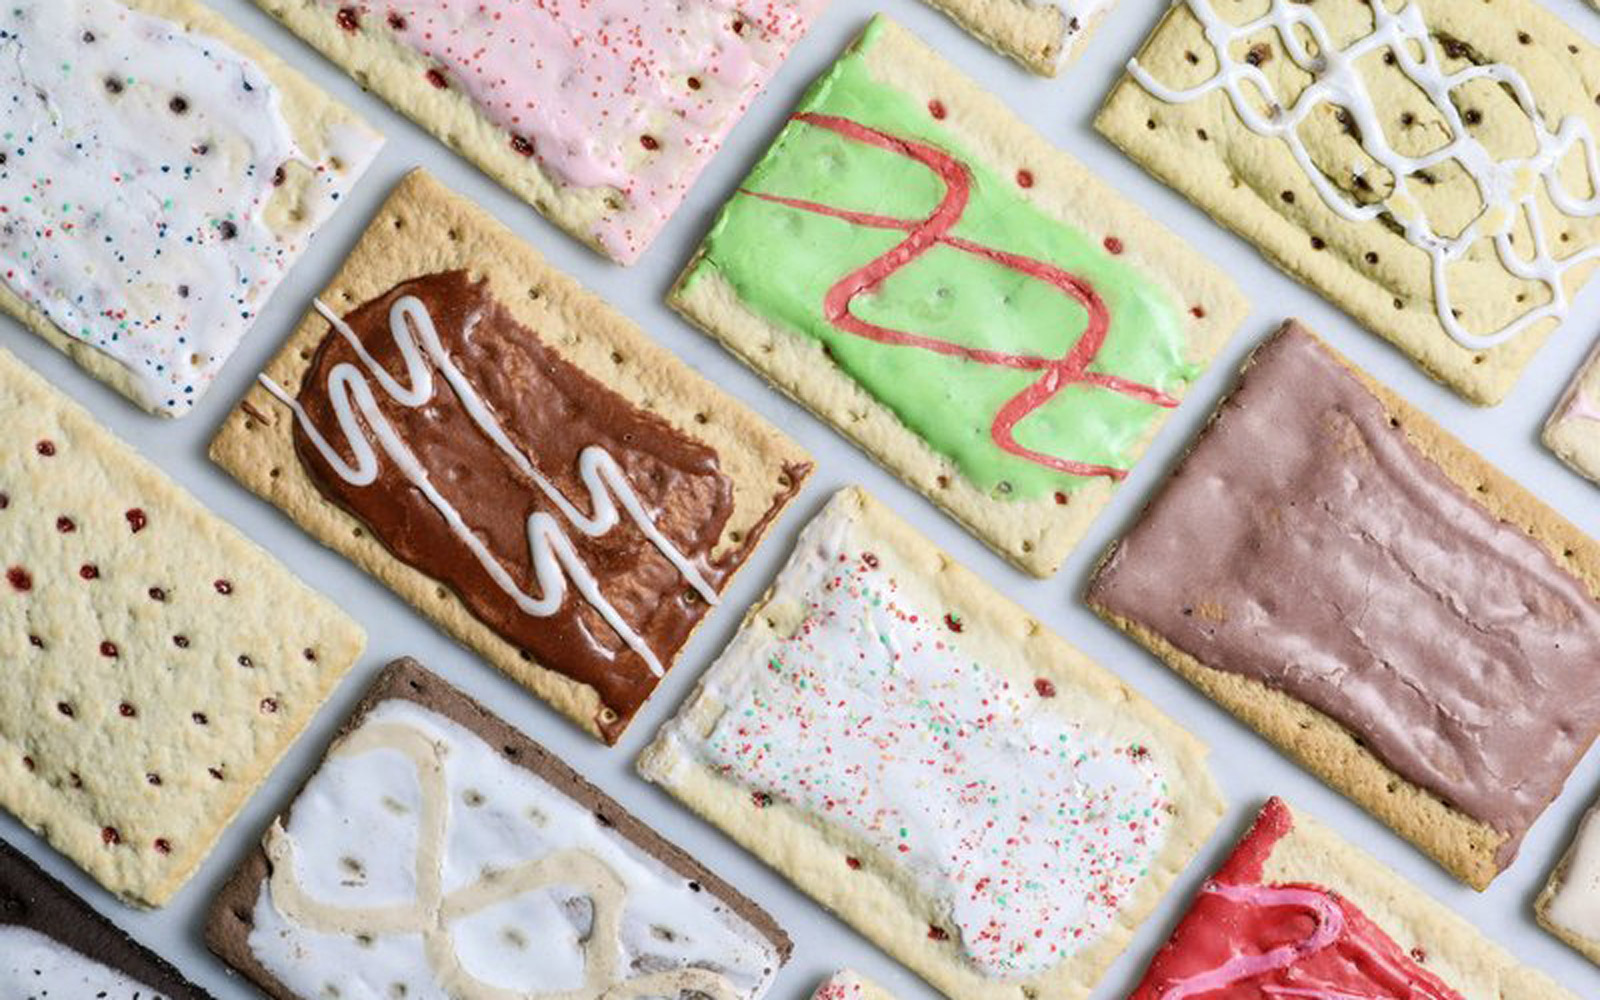 The Best and Worst Pop-Tarts Flavors, According to Food Editors